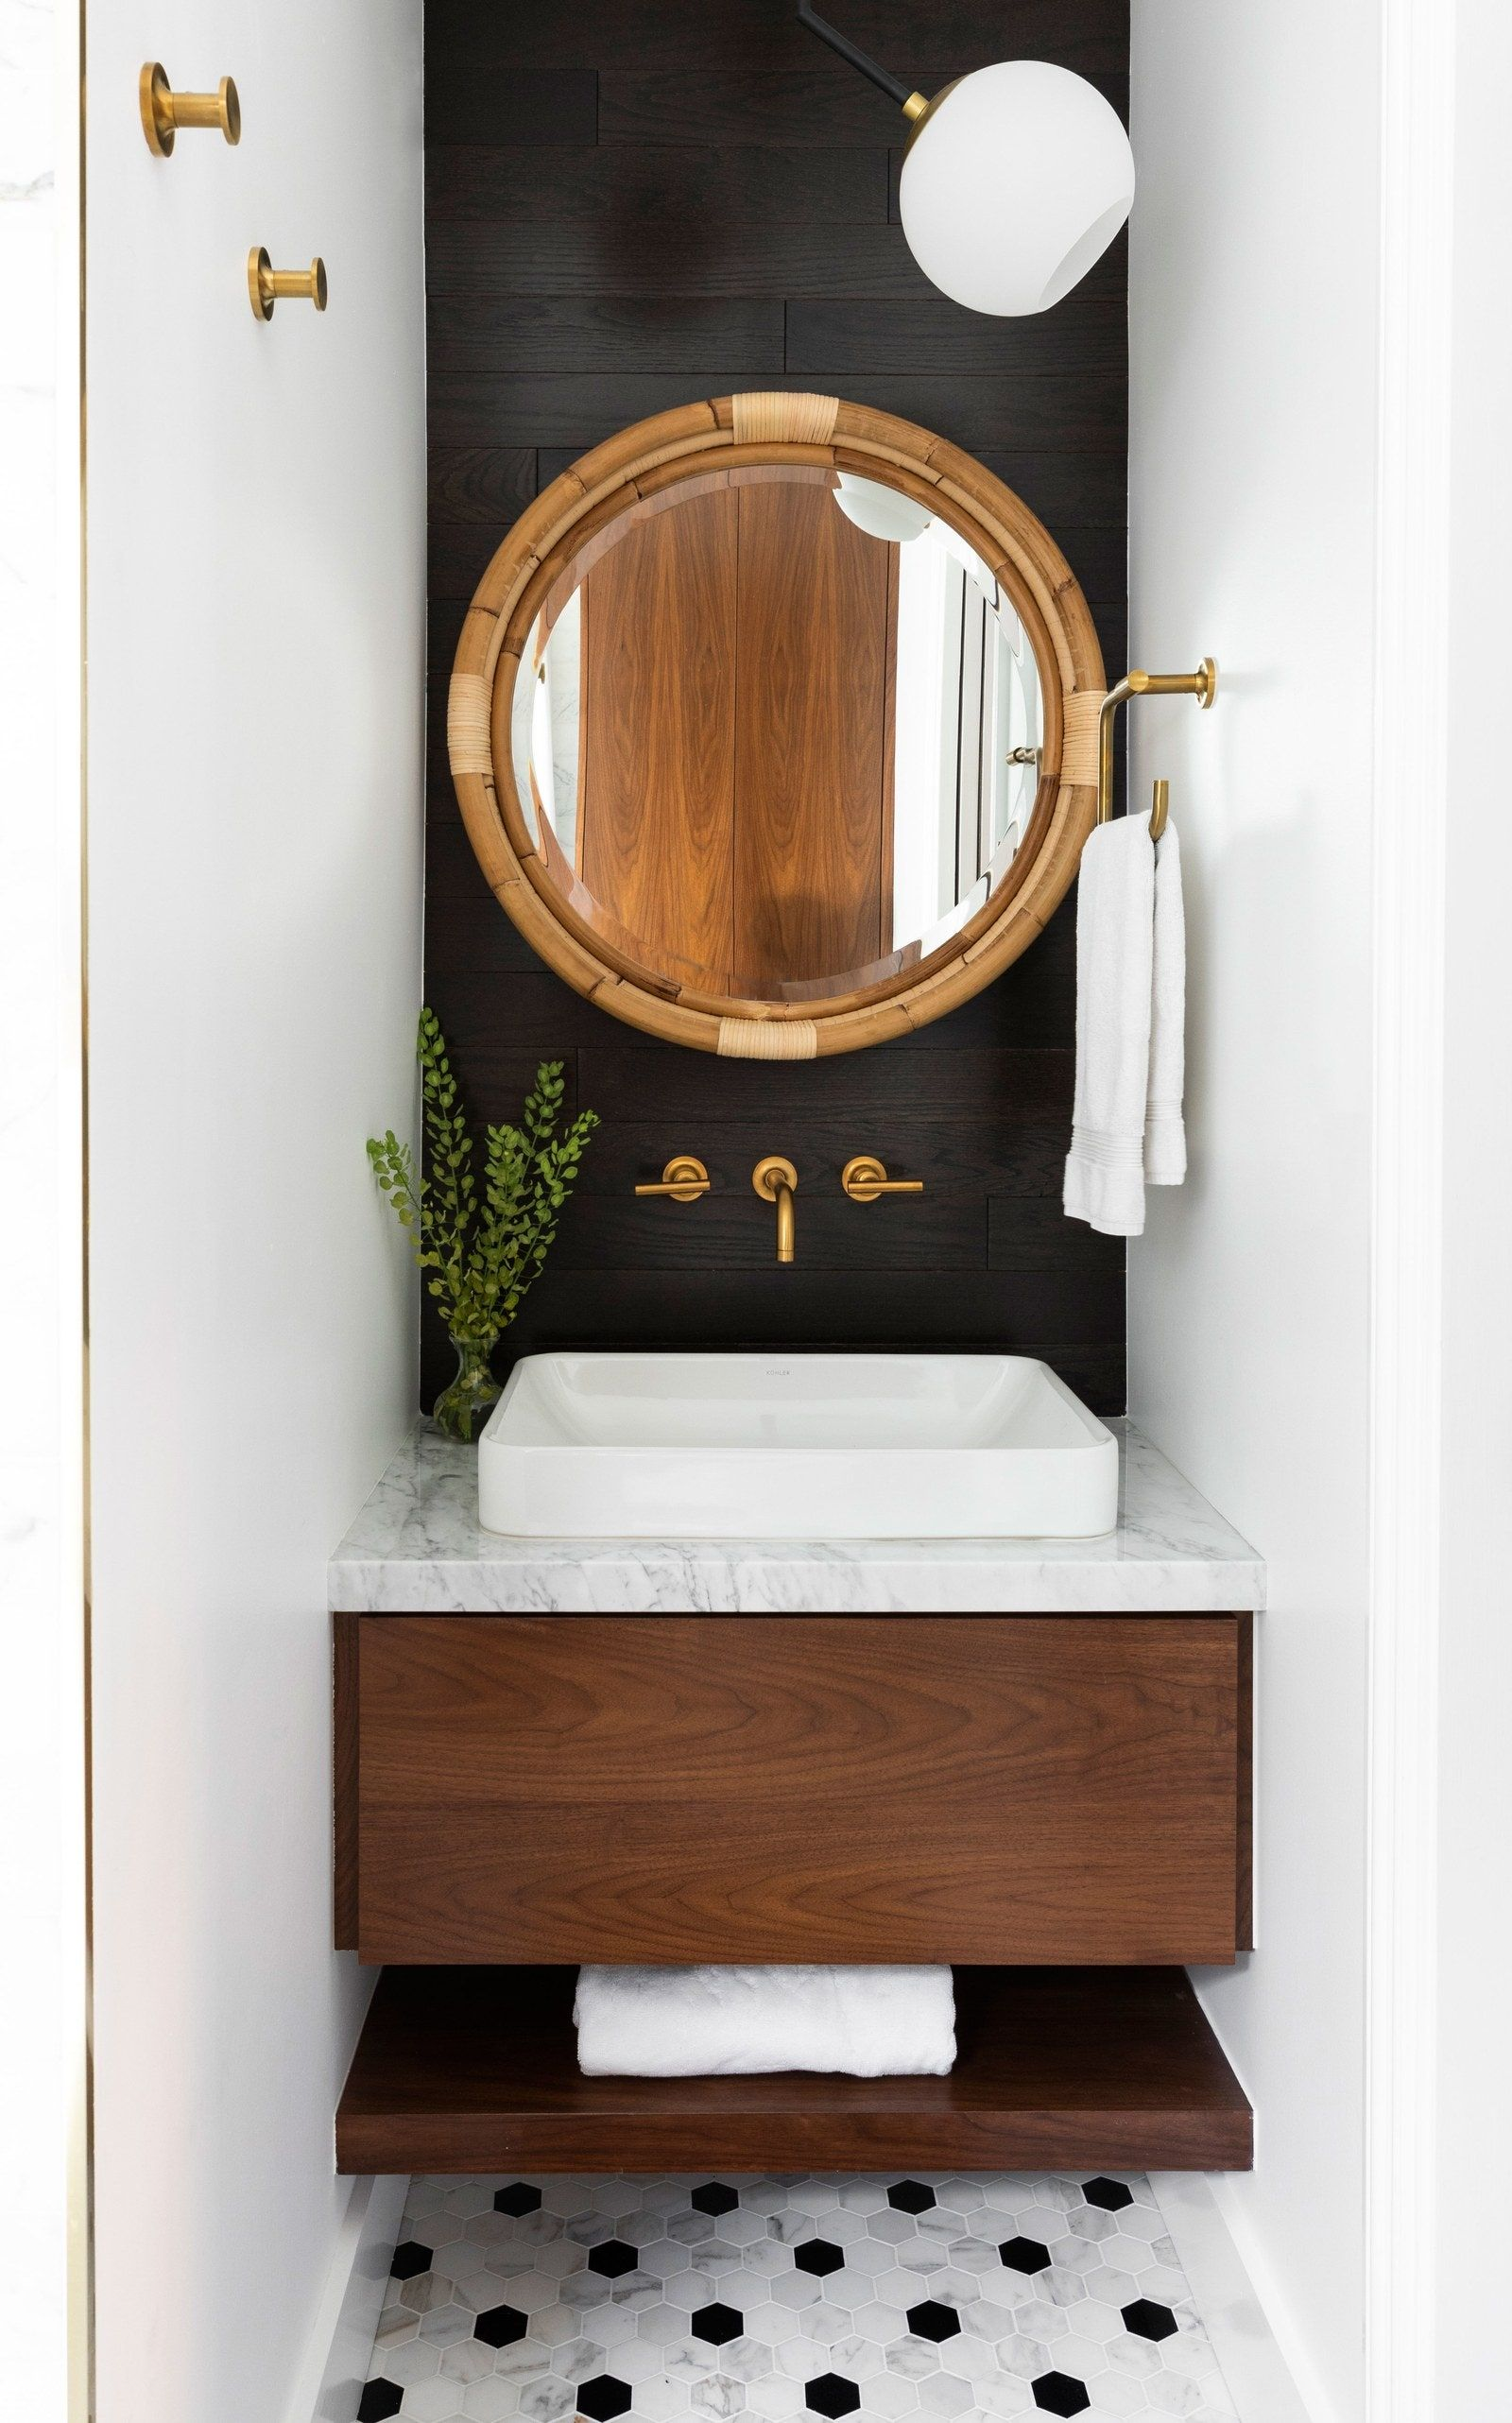 Inside The Bathrooms Yes Plural Of Whitney Port S Dreams In 2020 Whitney Port Architectural Digest Bathroom Design Small